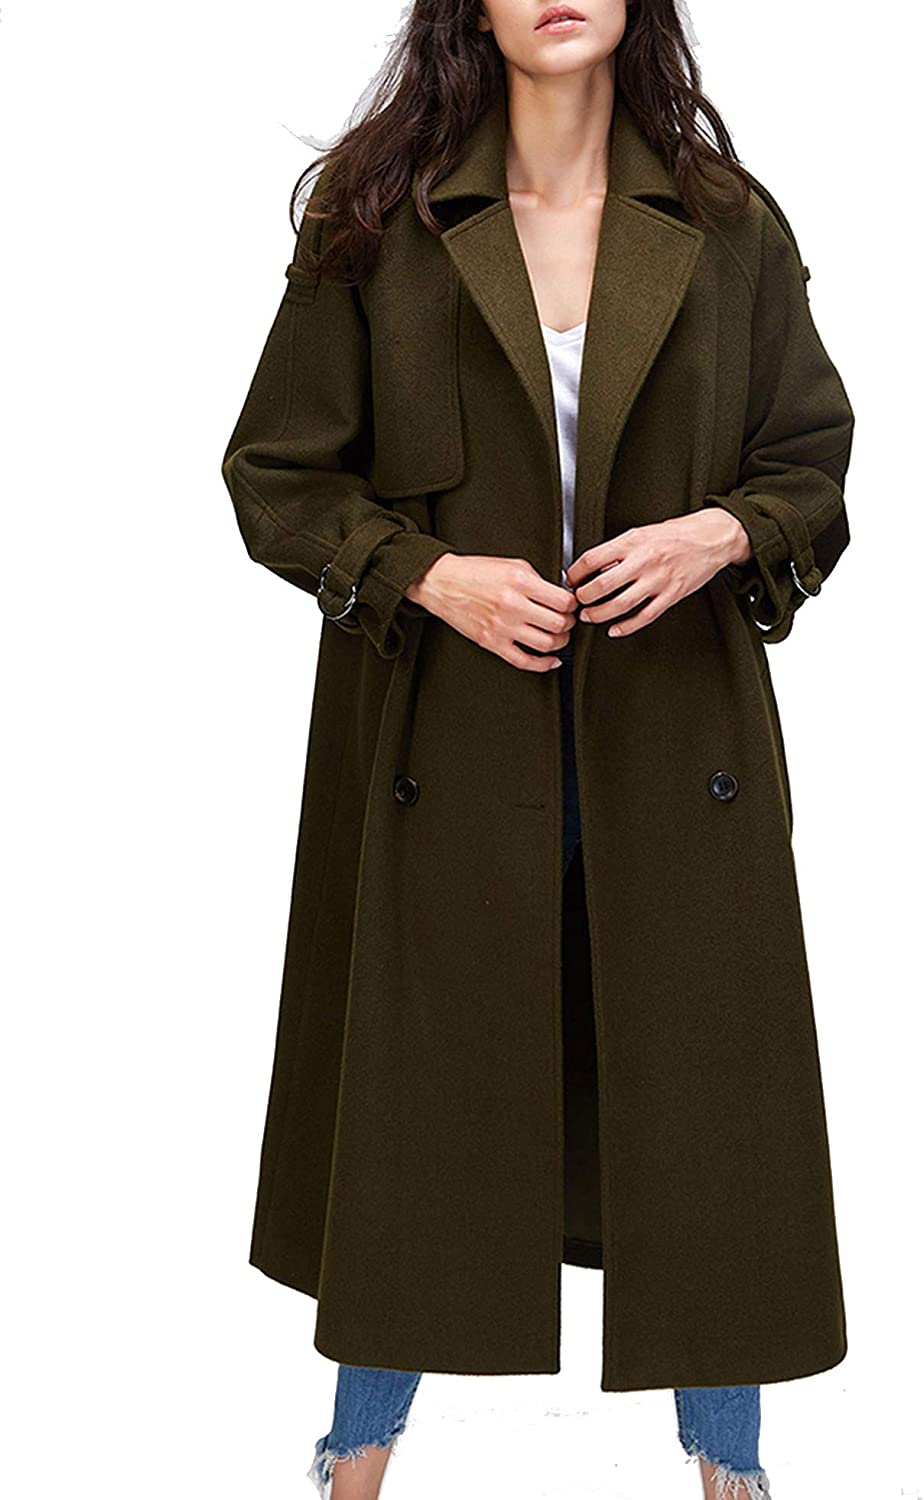 I'm good at you Autumn Winter New Women's Casual Wool Blend Trench Coat Oversize Double Breasted XLong Coat with Belt